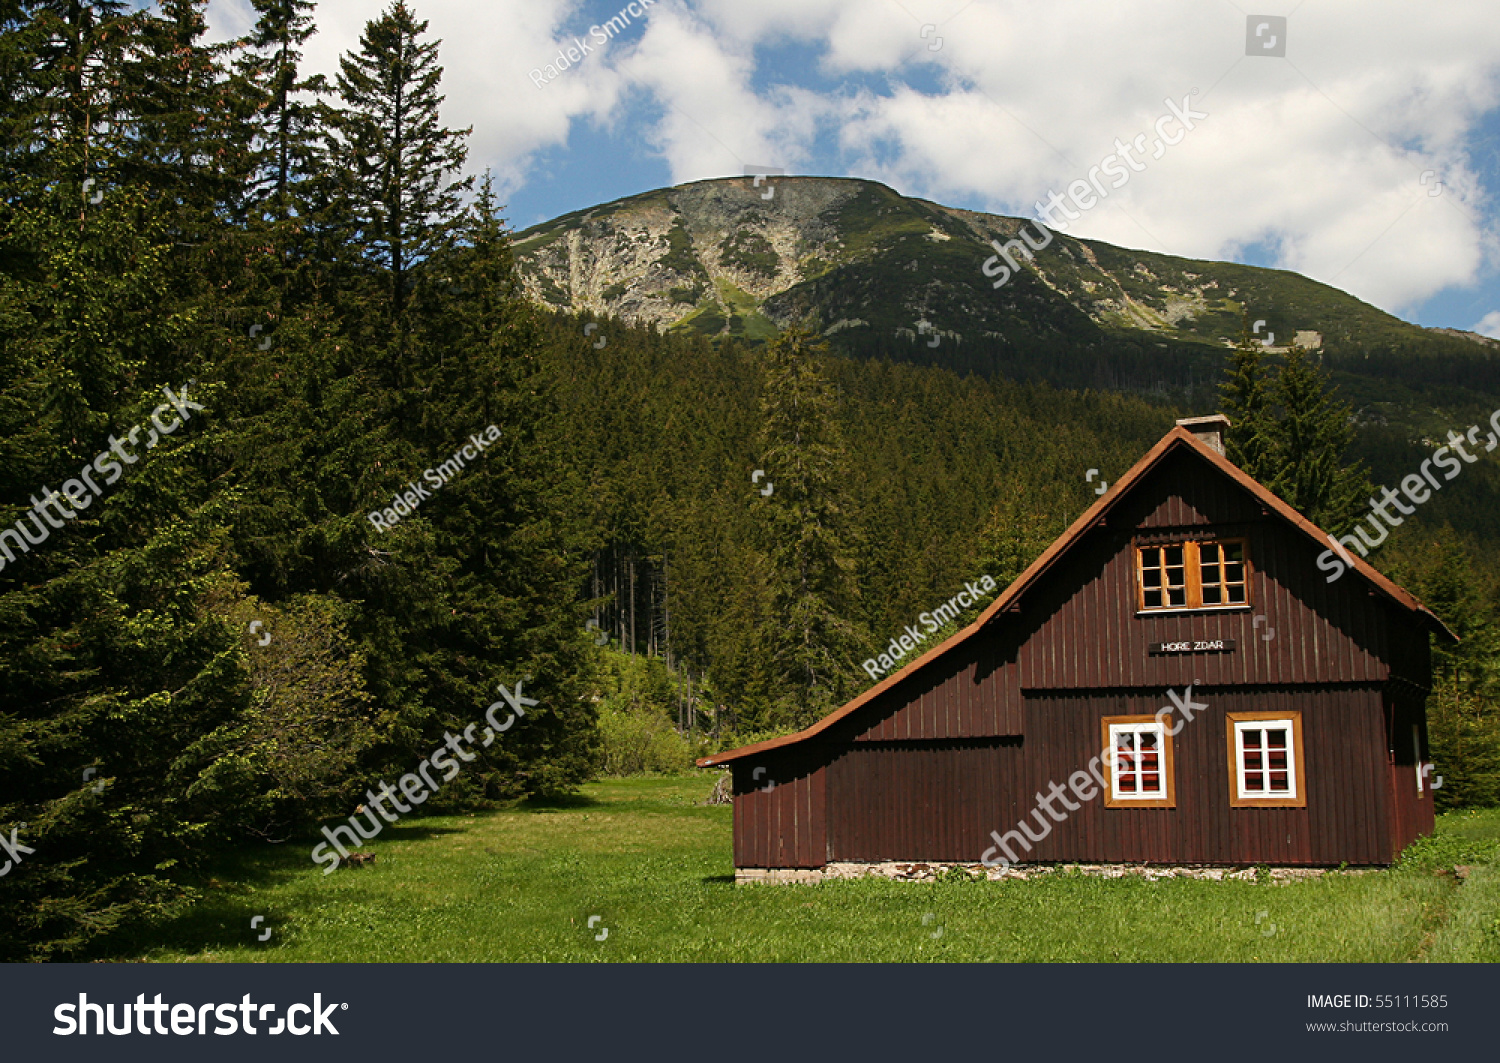 Mountain cottage - Mountains & Nature Background Wallpapers on ...